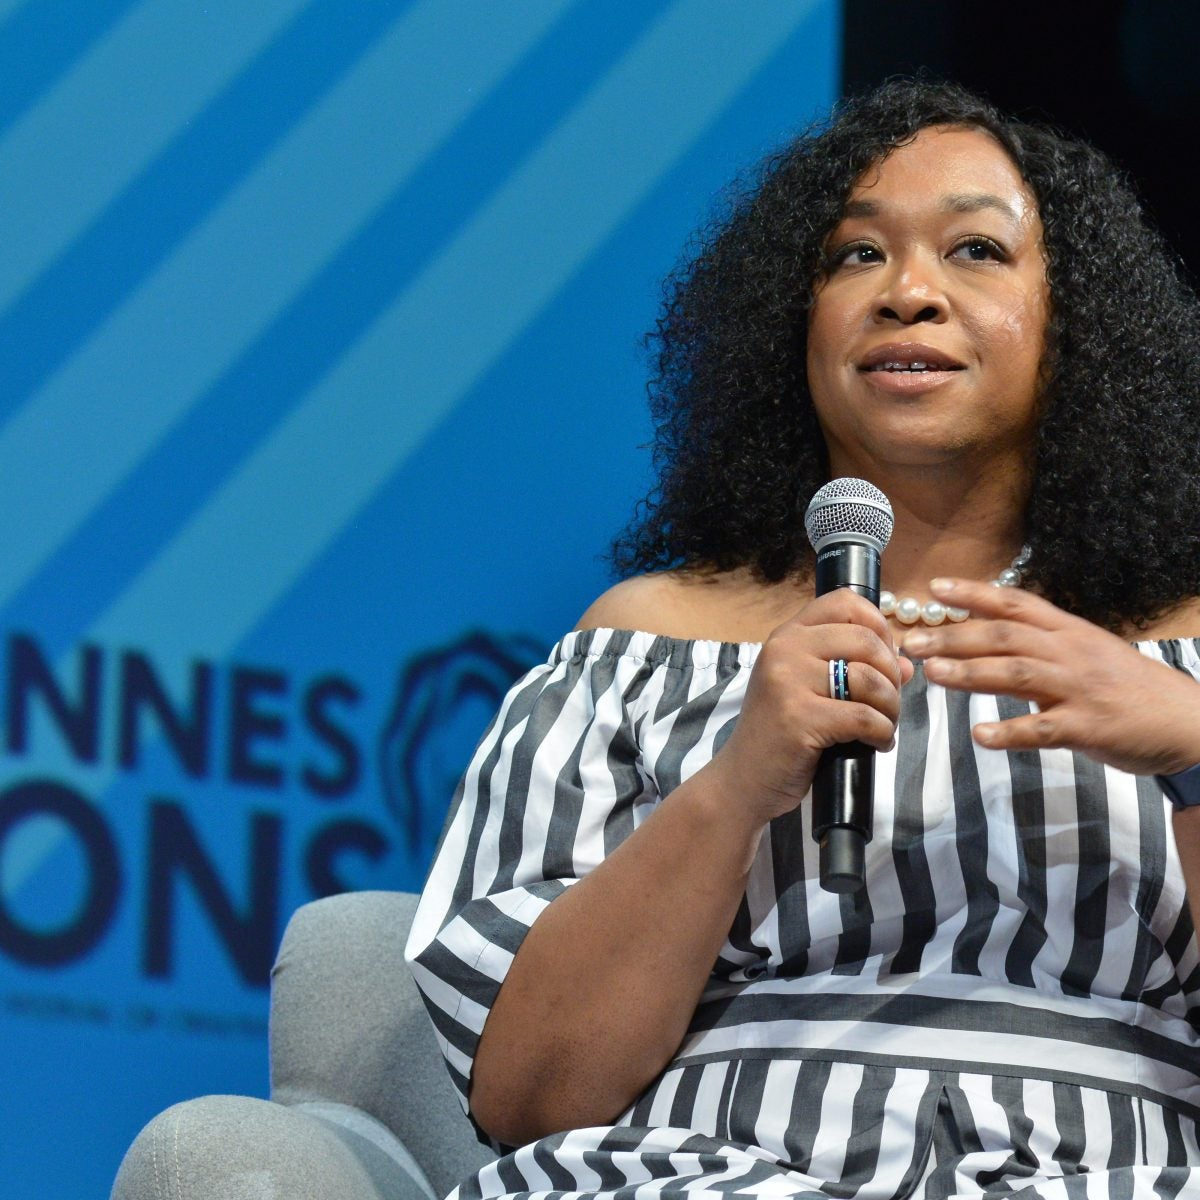 Shonda Rhimes Shares The Final Straw That Pushed Her To Leave ABC For Netflix